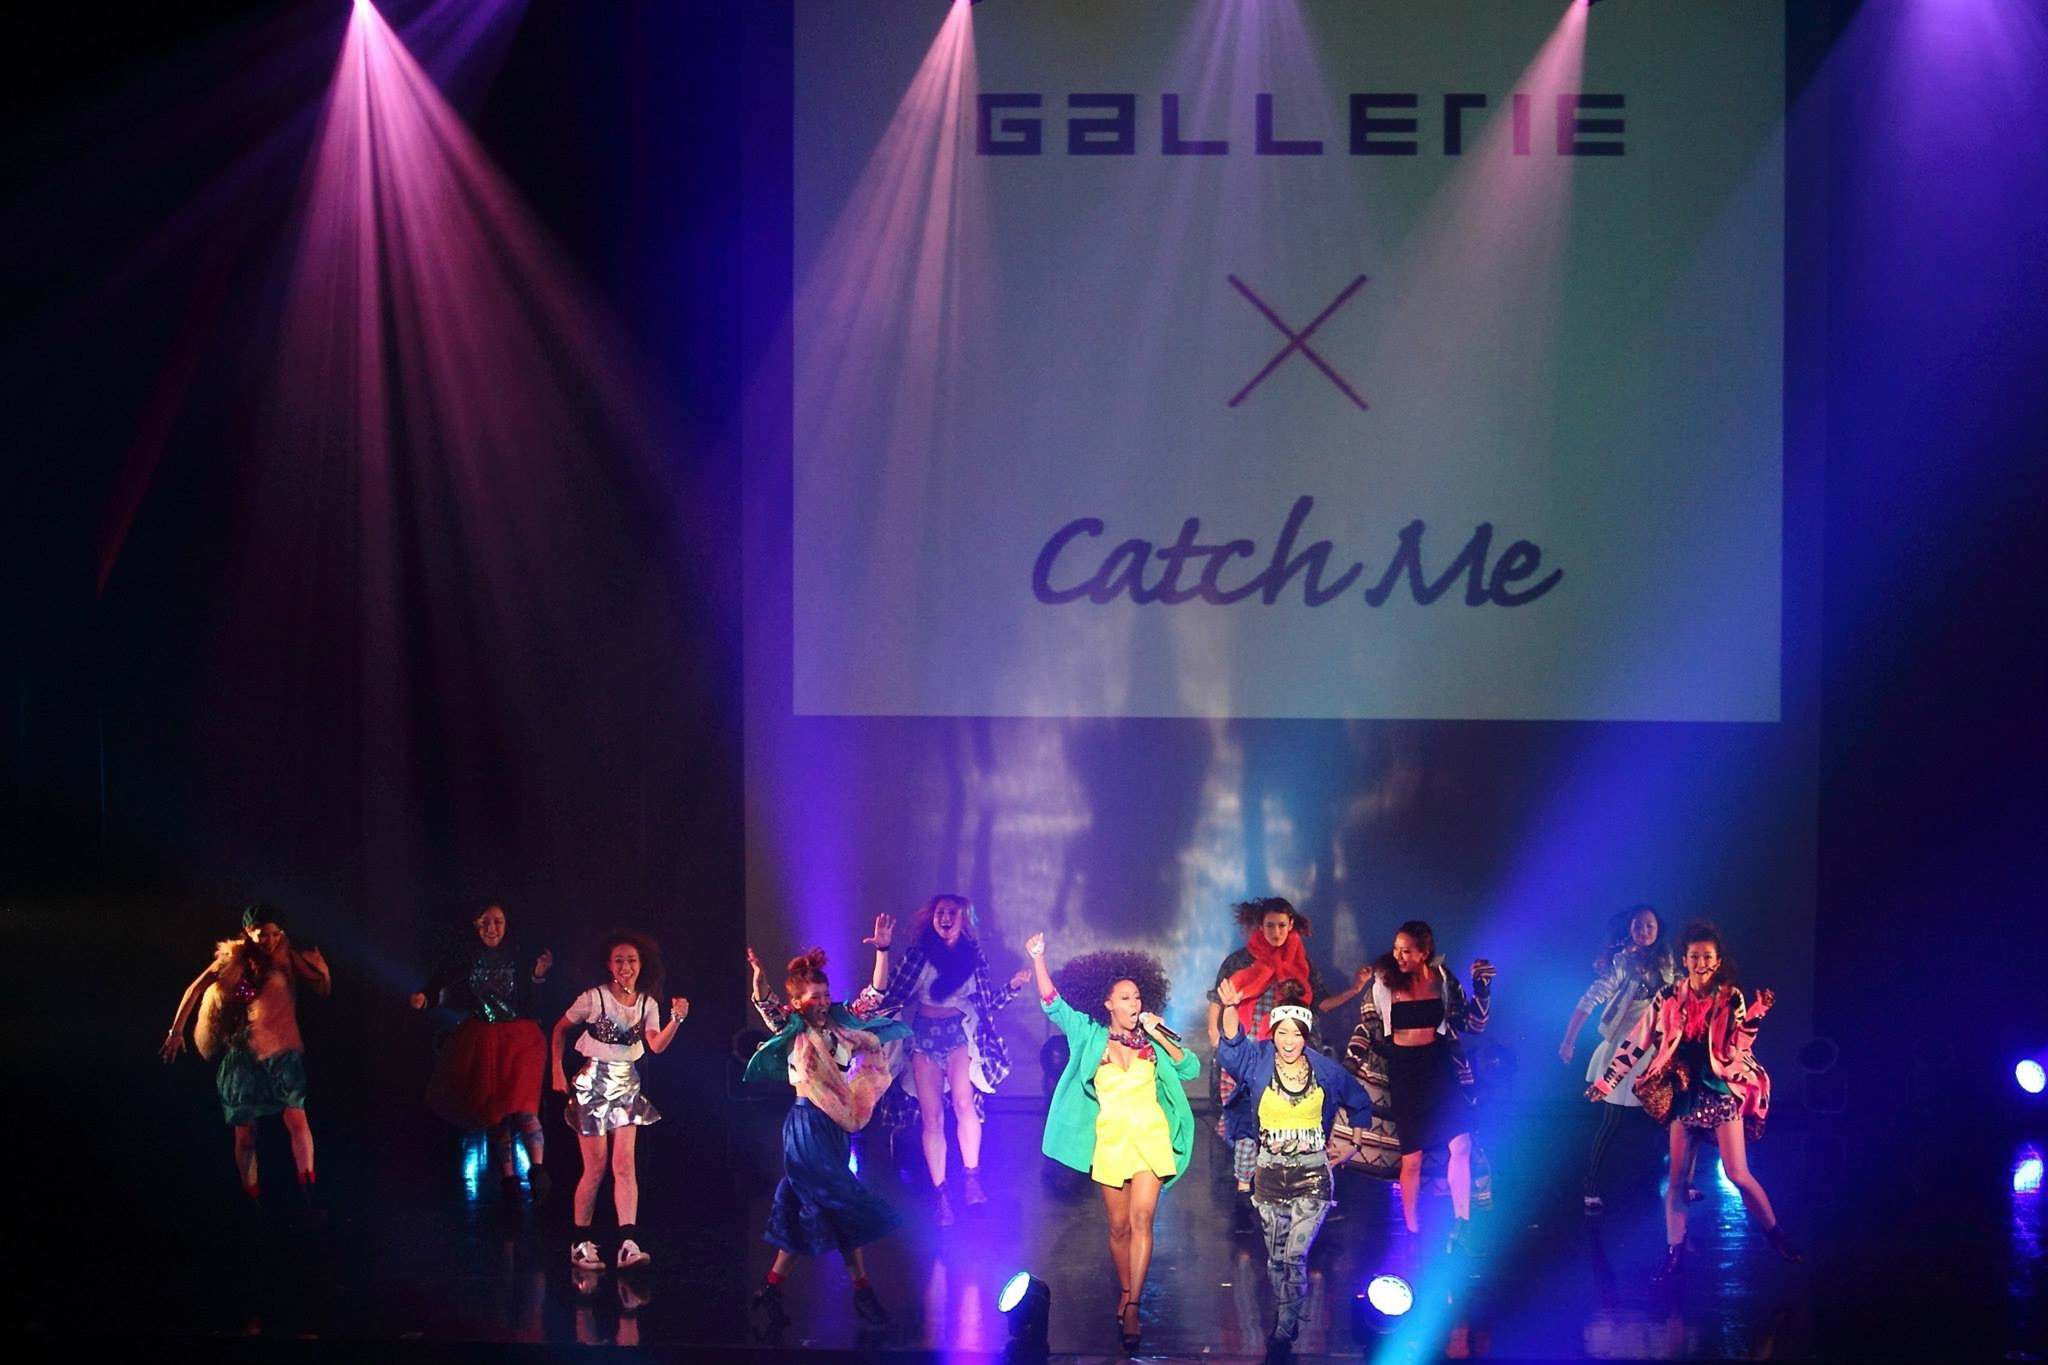 ZEPP NAMBA CATCH ME FASHION SHOW